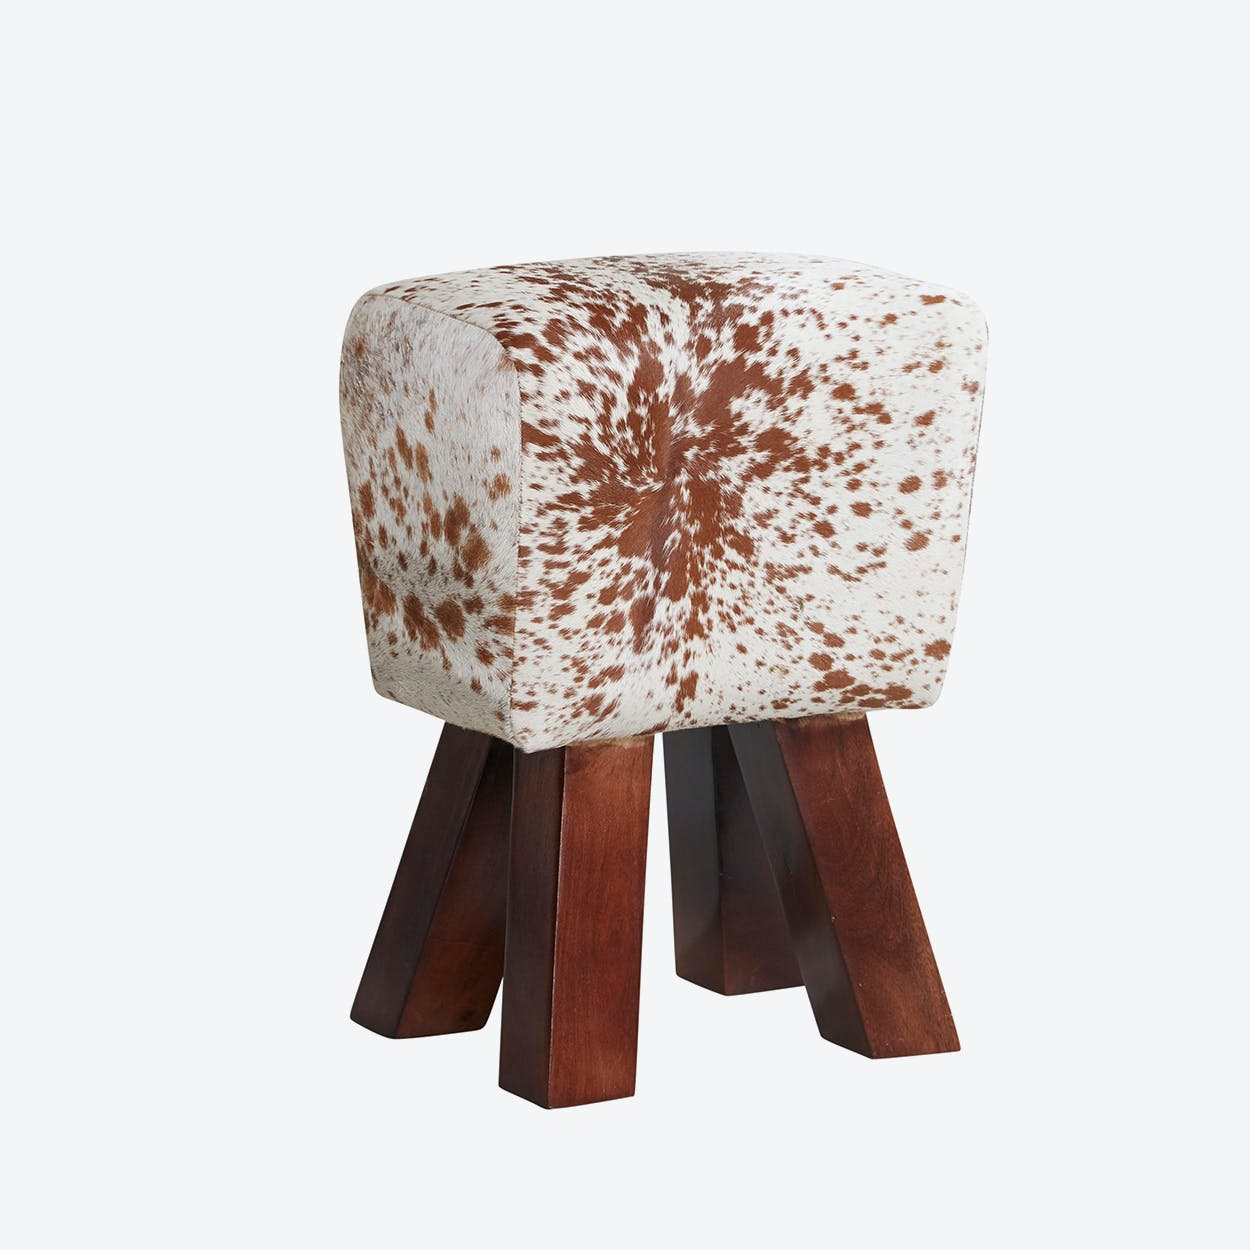 Wooden Cowhide Stool Natural